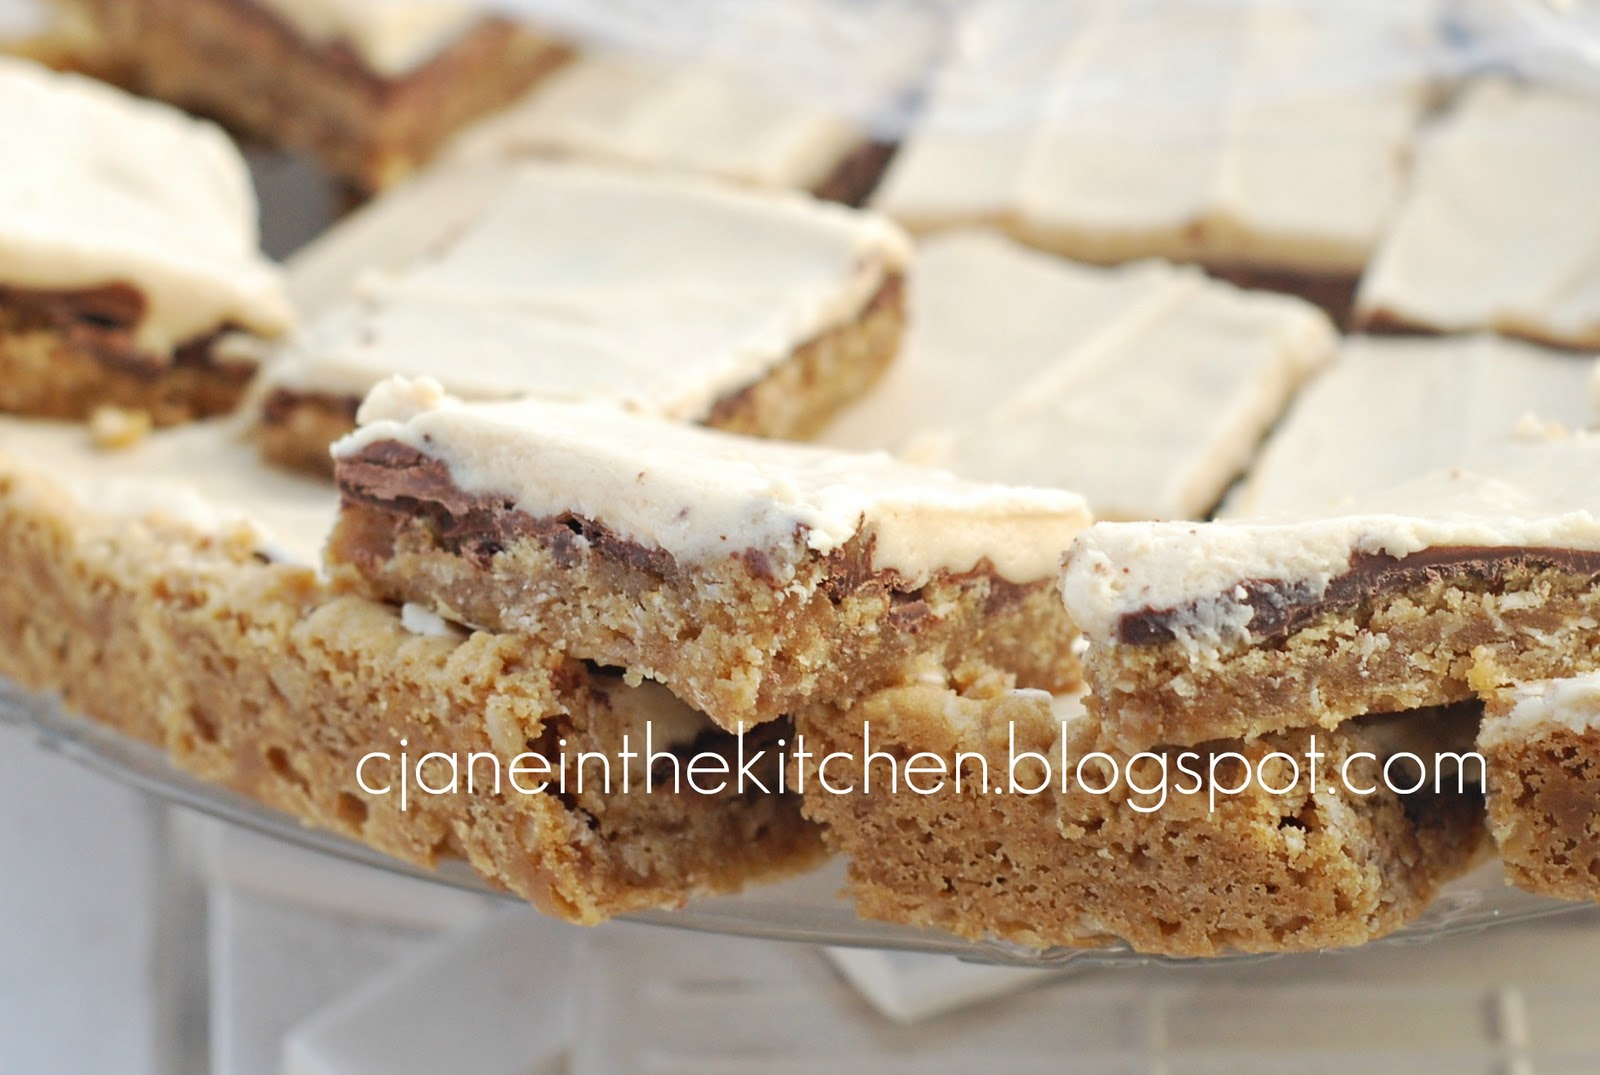 See Jane in the kitchen: Peanut Butter Cookie Bars